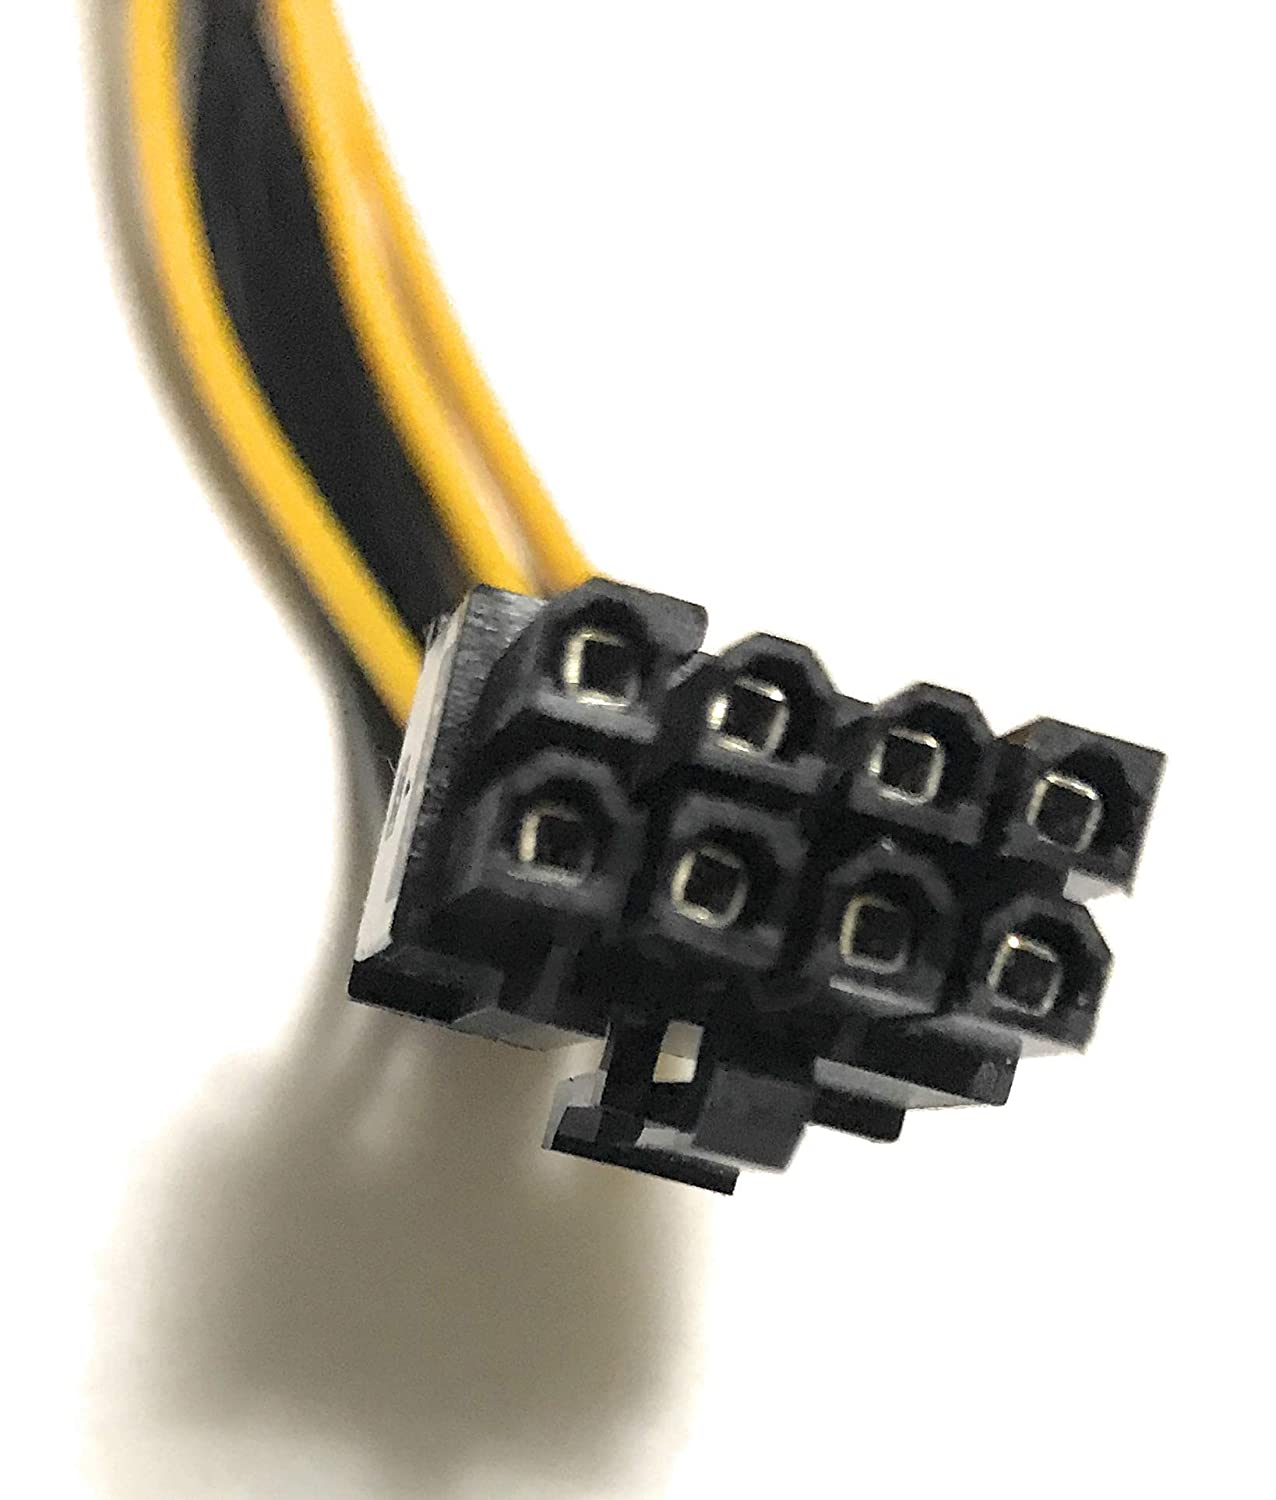 6+2 PCIe Power 6pin to 8pin adapter cable from Patton Power Essentials